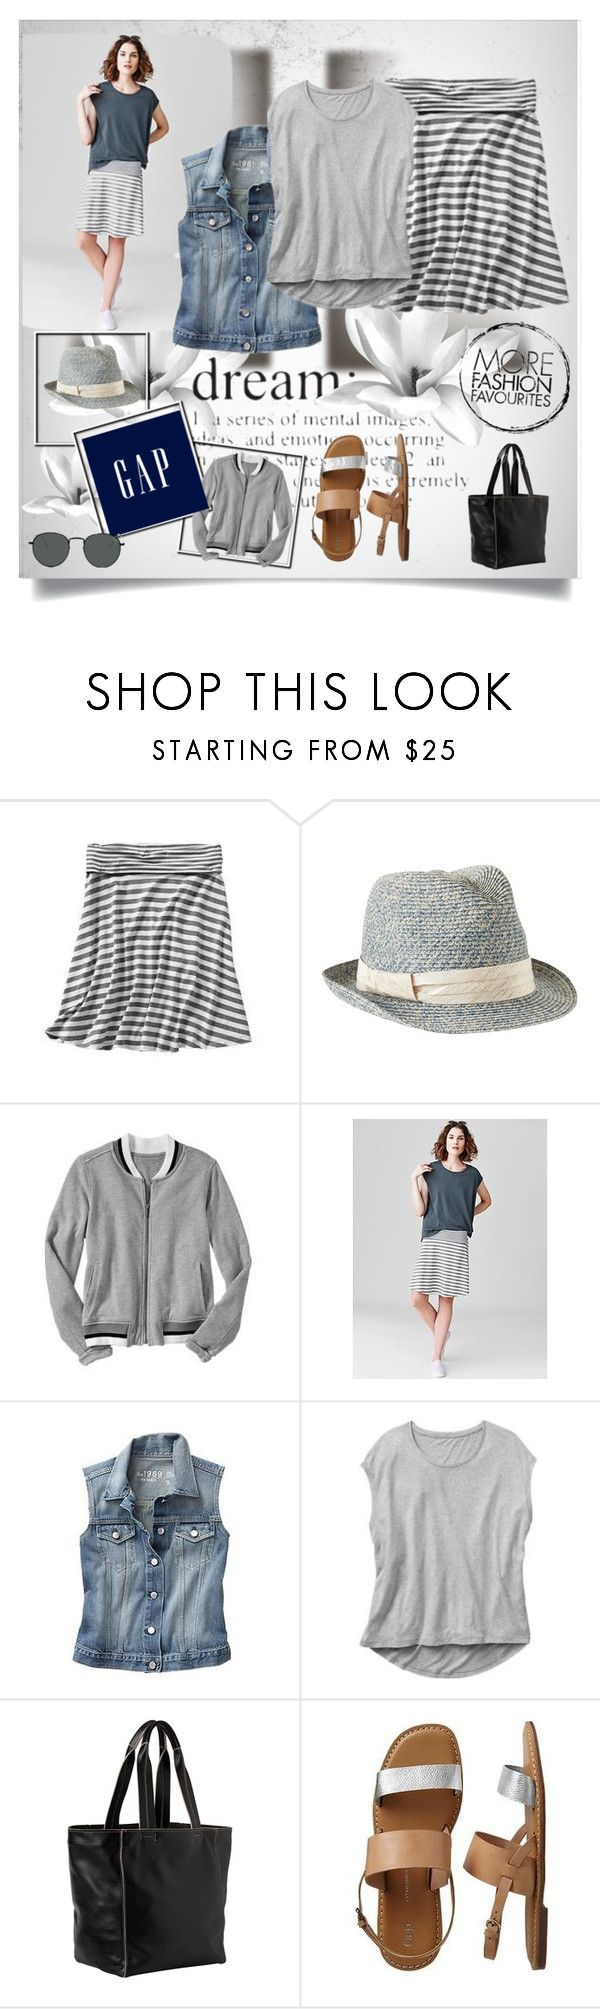 """Summer Lovin,' Gap Style"" by kay79 ❤ liked on Polyvore featuring Gap and summerloves"